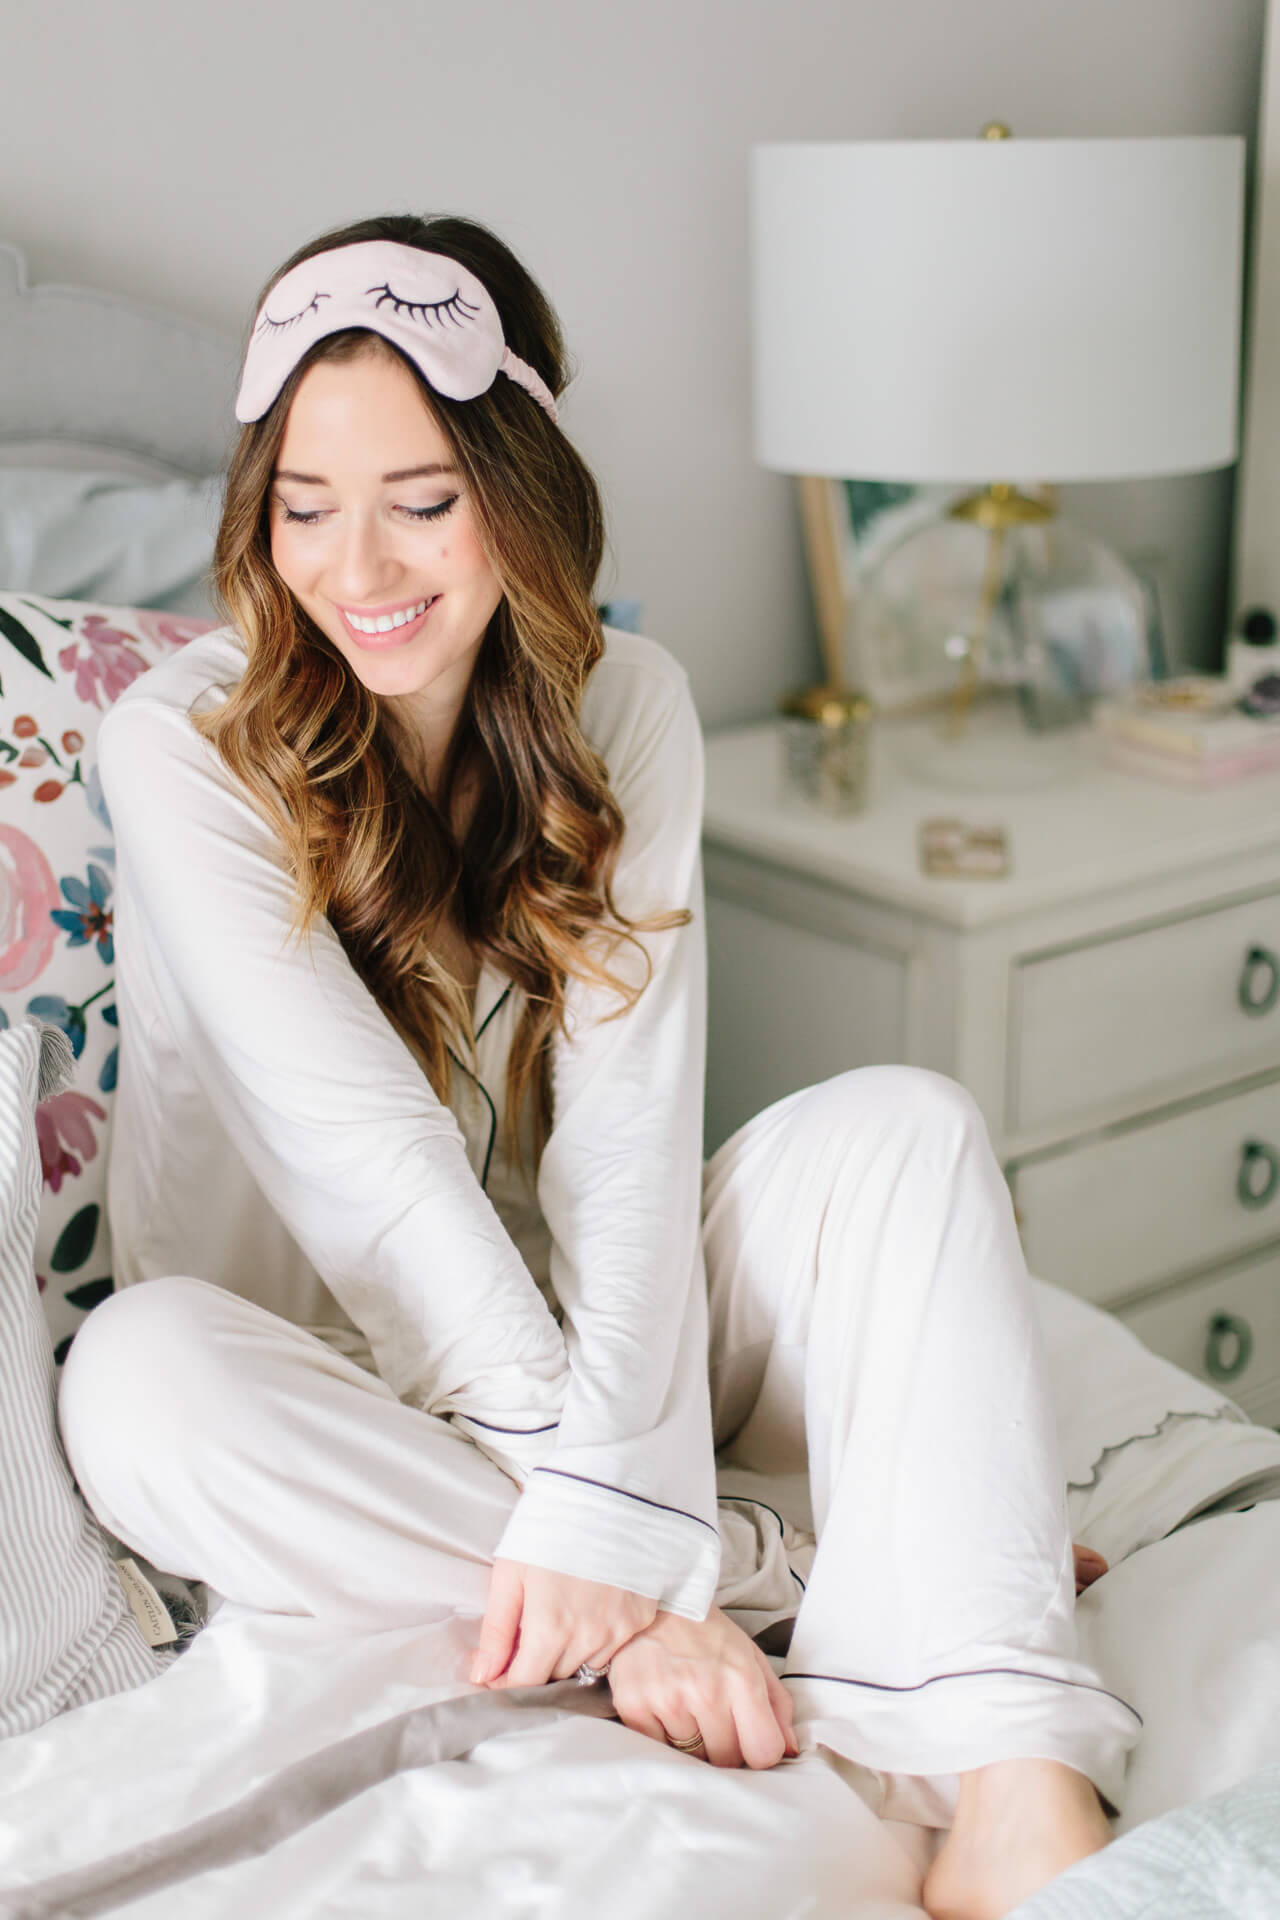 How to feel rejuvenated when waking up